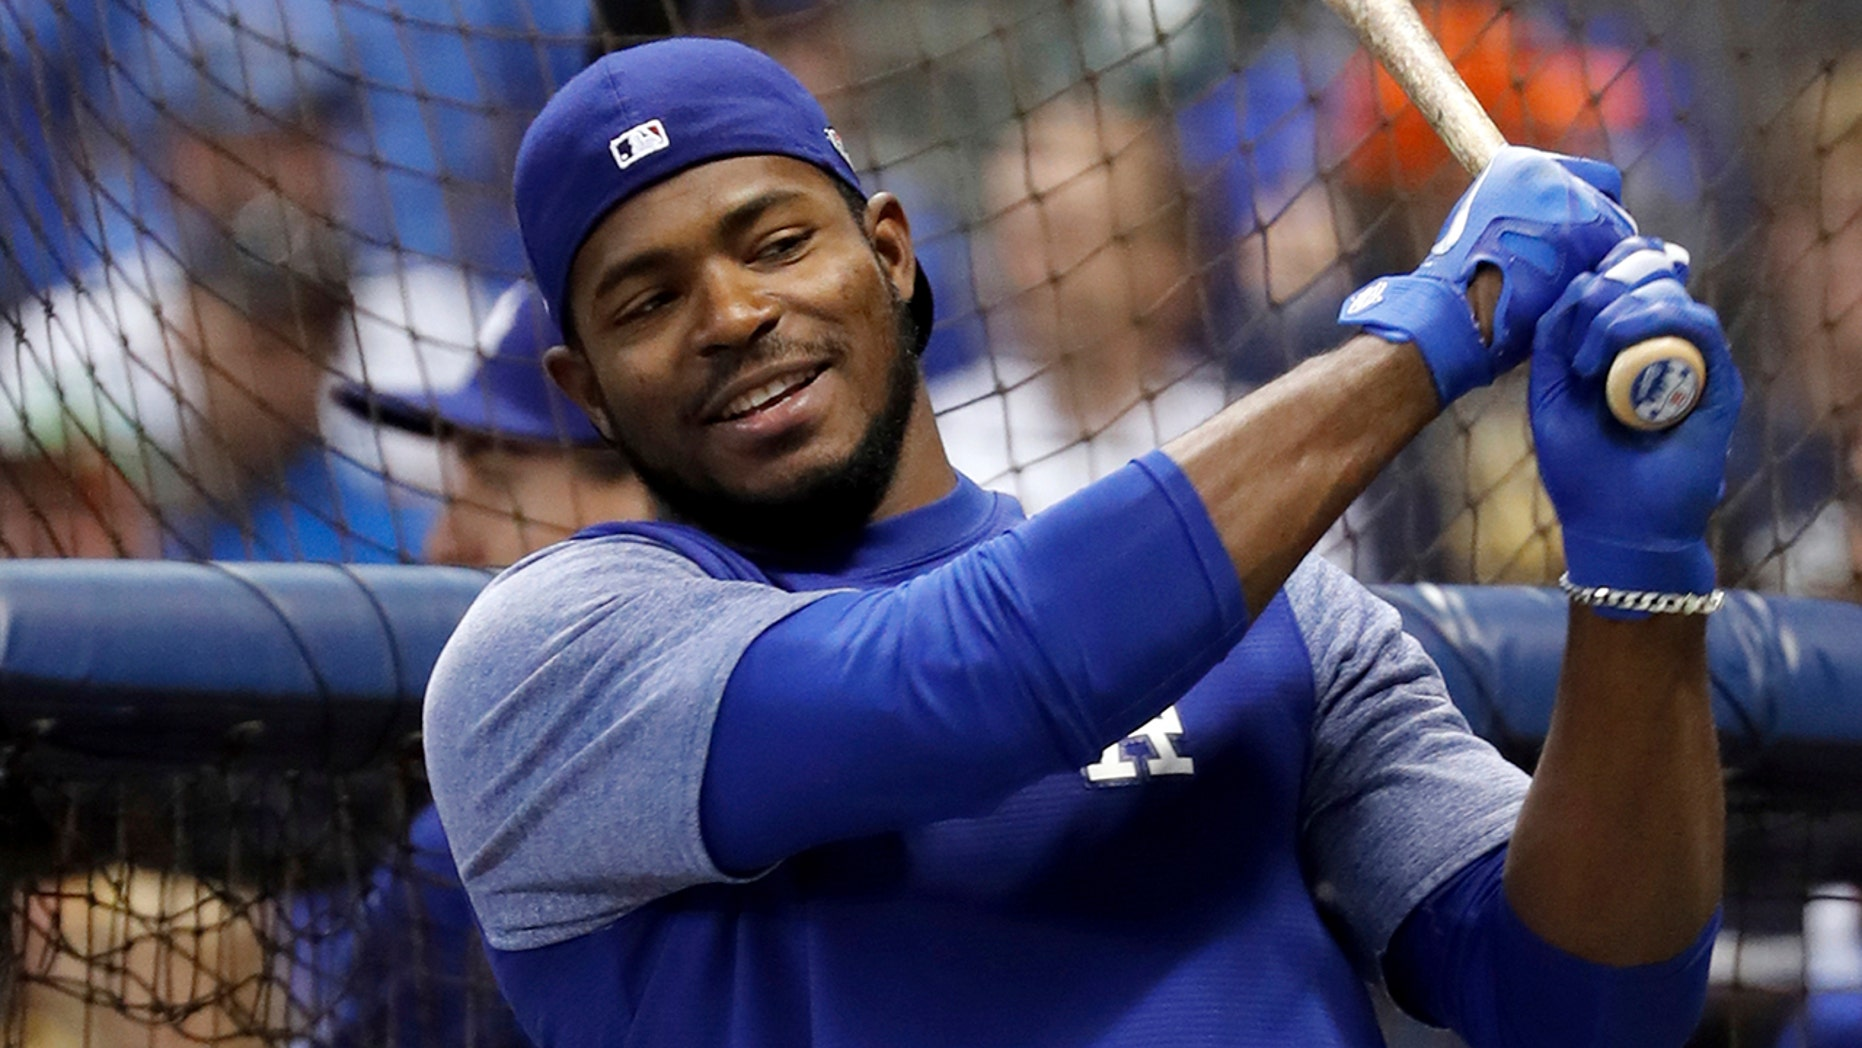 Los Angeles Dodgers' Yasiel Puig takes batting use before Game 6 of a National League Championship Series ball diversion opposite a Milwaukee Brewers Friday, Oct. 19, 2018, in Milwaukee.